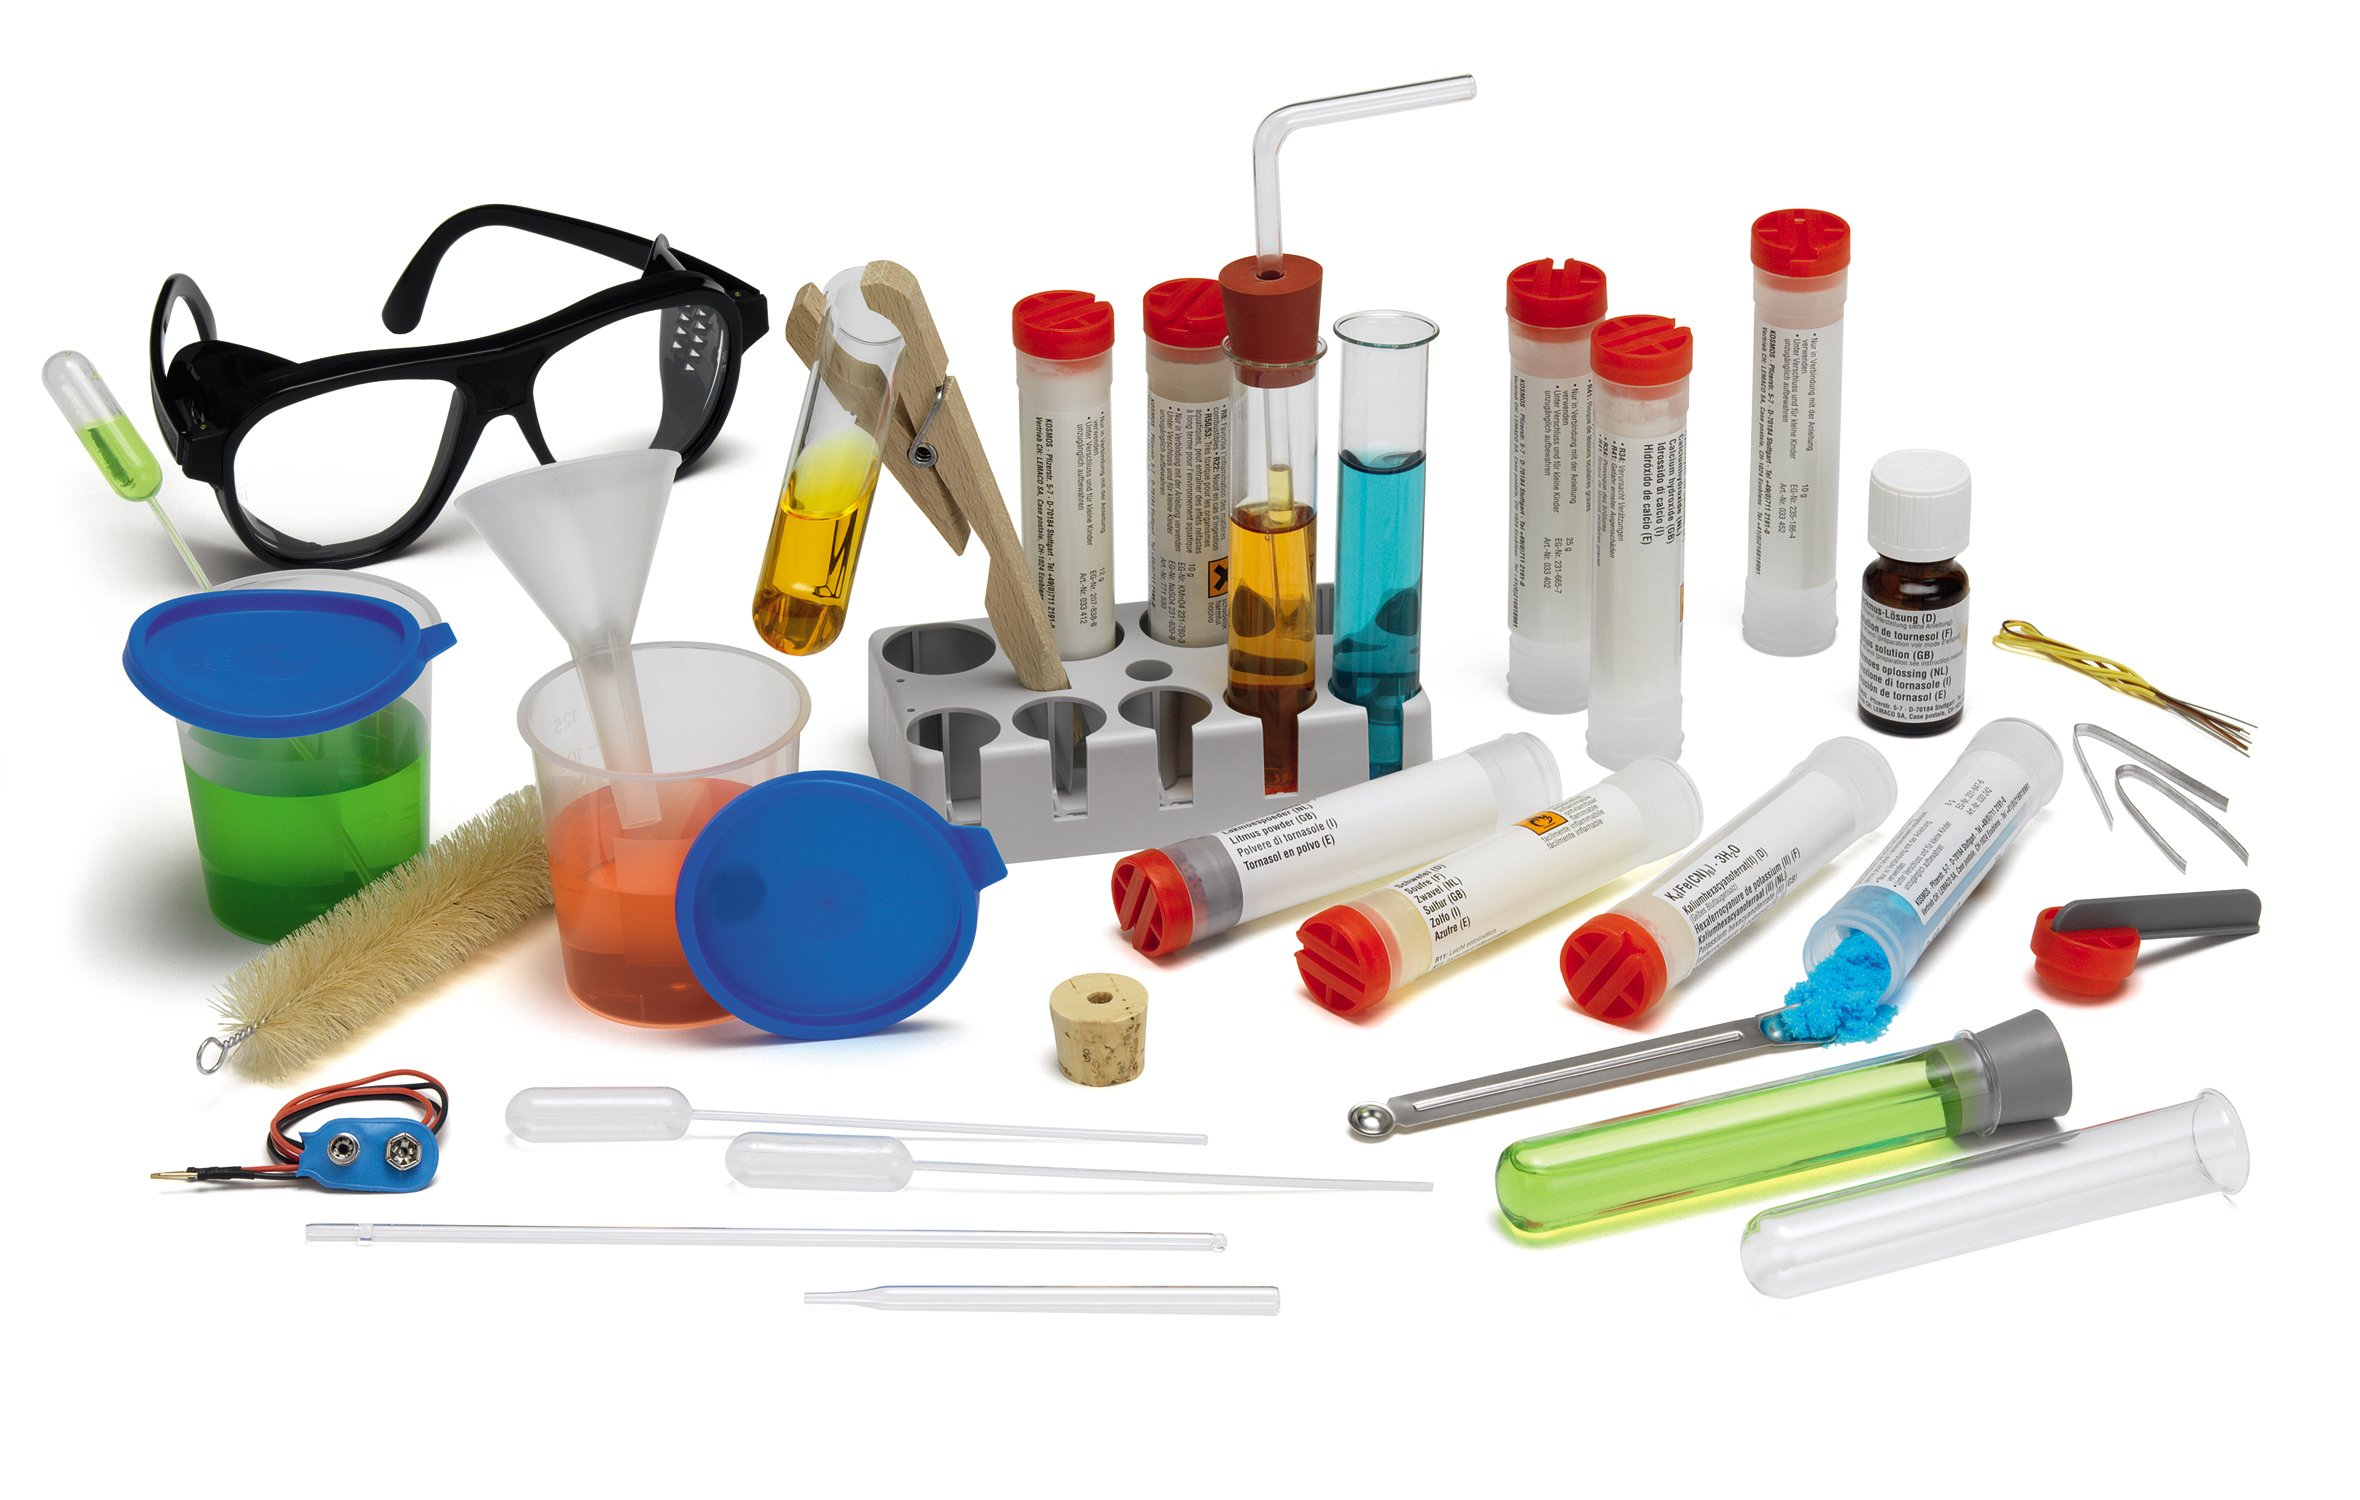 Thames & Kosmos Chem C2000 (V 2.0) Chemistry Set with 250 Experiments and 128 Page Lab Manual, Student Laboratory Quality Instruments & Chemicals by Thames & Kosmos (Image #4)